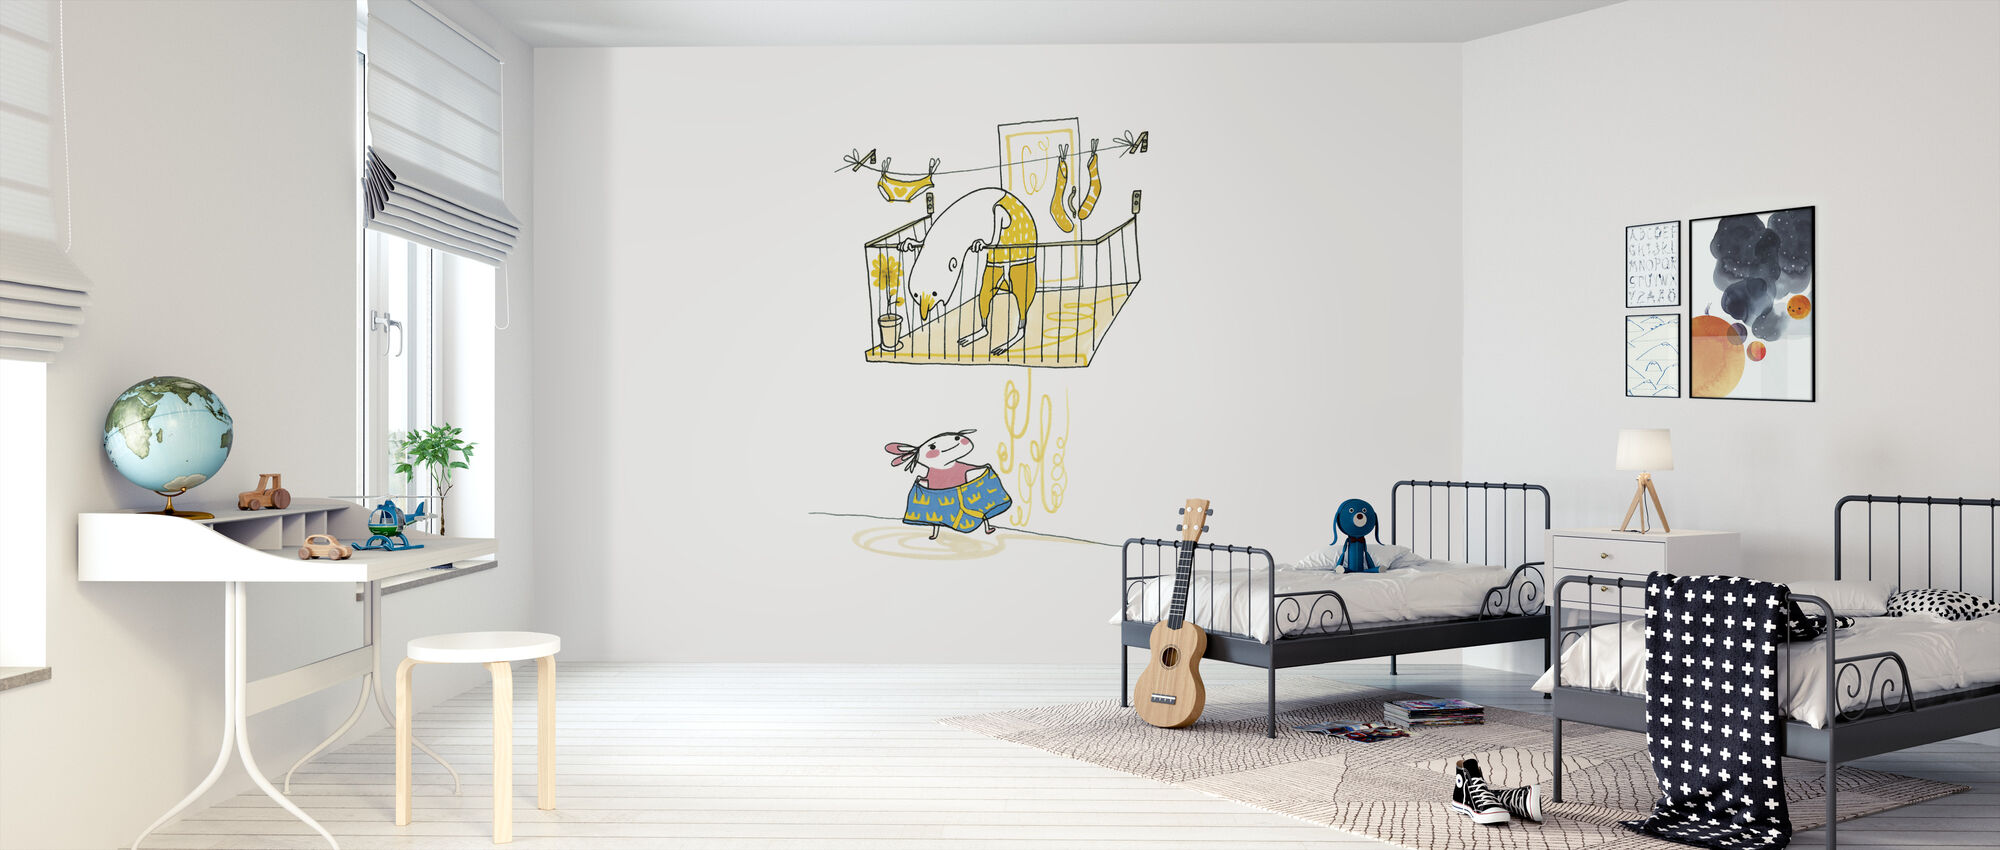 Under the Balcony in the middle of the underwear - Wallpaper - Kids Room